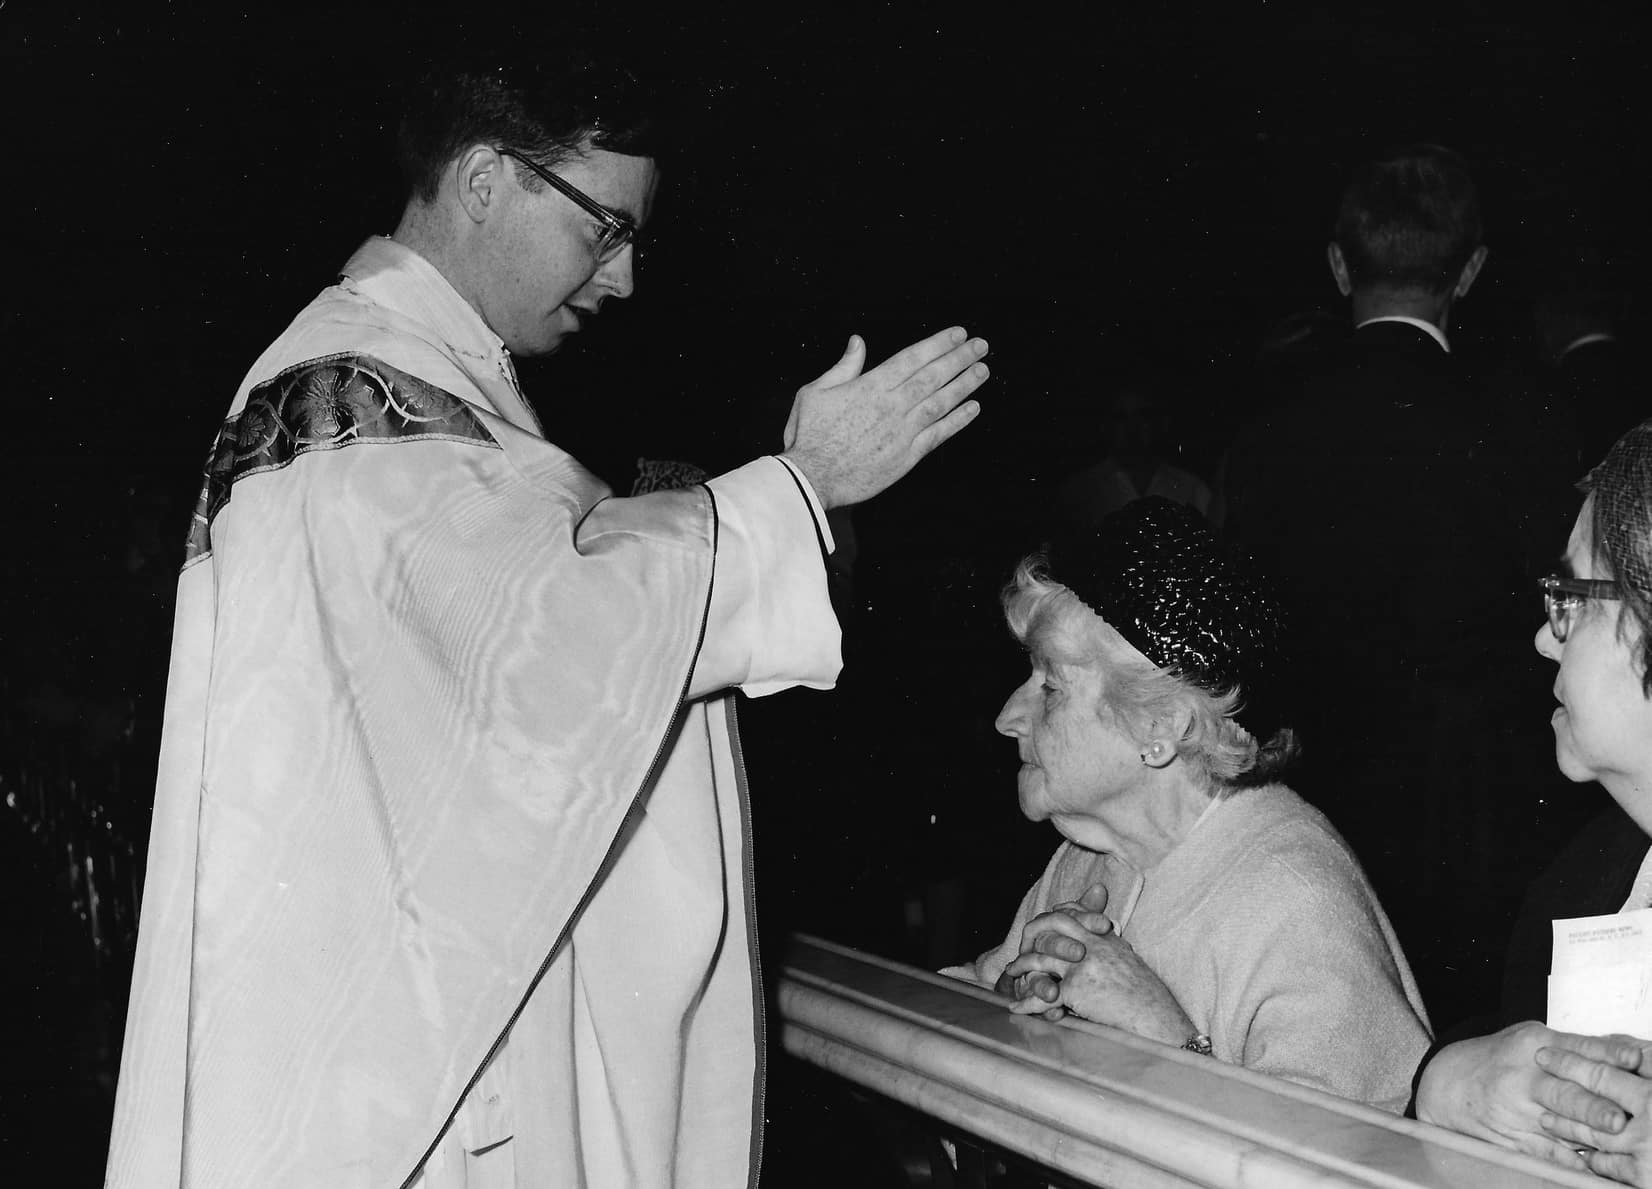 Fr. Foley giving a first blessing, May 1, 1967.